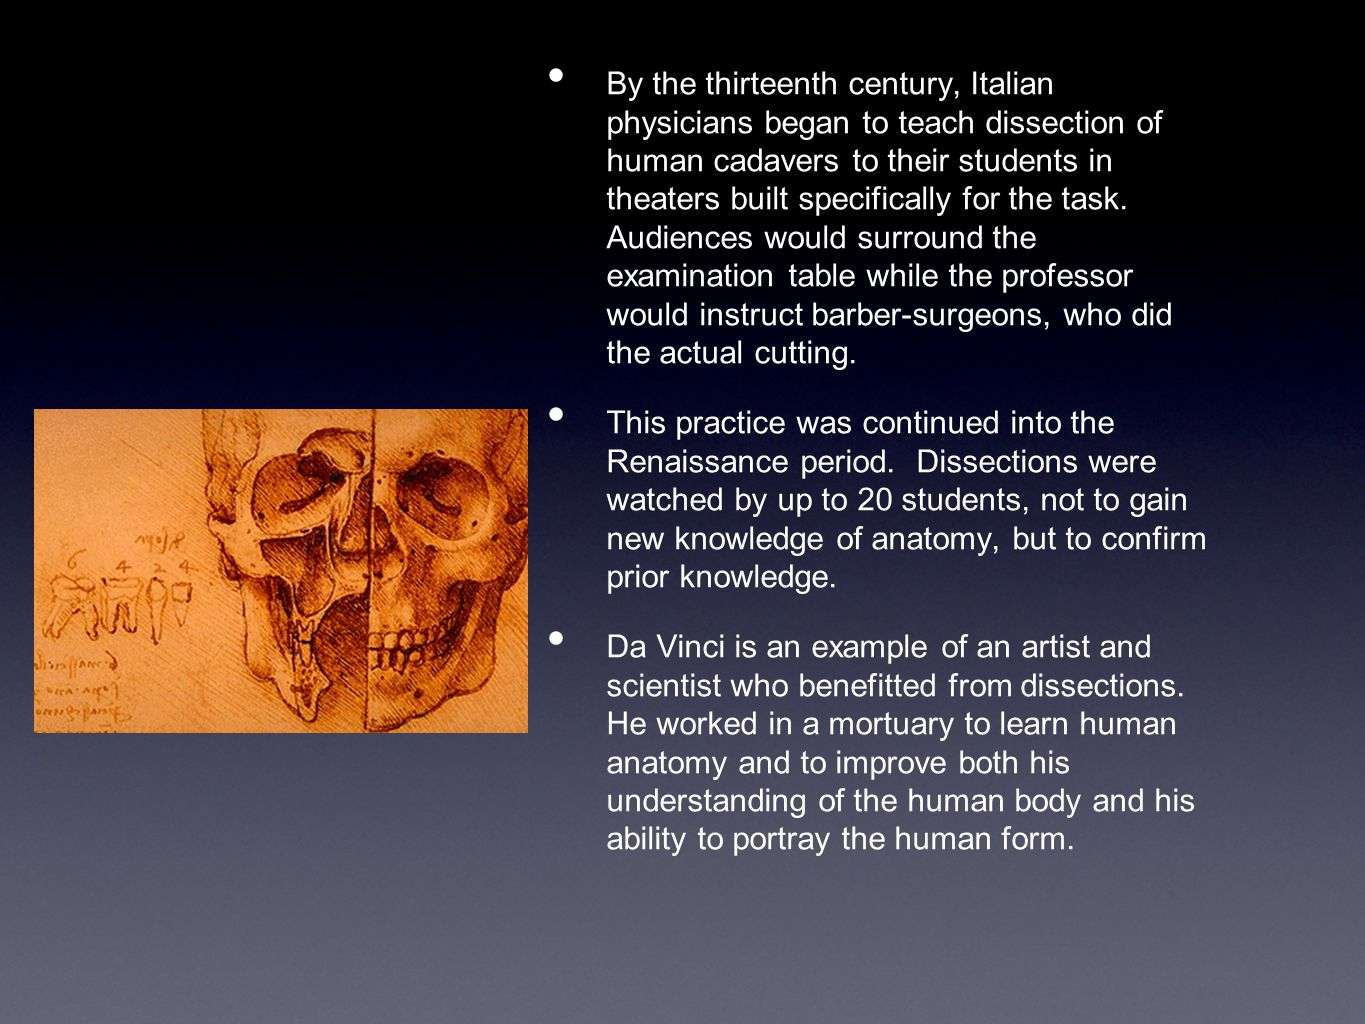 Moving toward Enlightenment It was not until the 16th century that the Italian anatomist Vesalius began to dissect human cadavers and animals with the aim of gaining new knowledge.